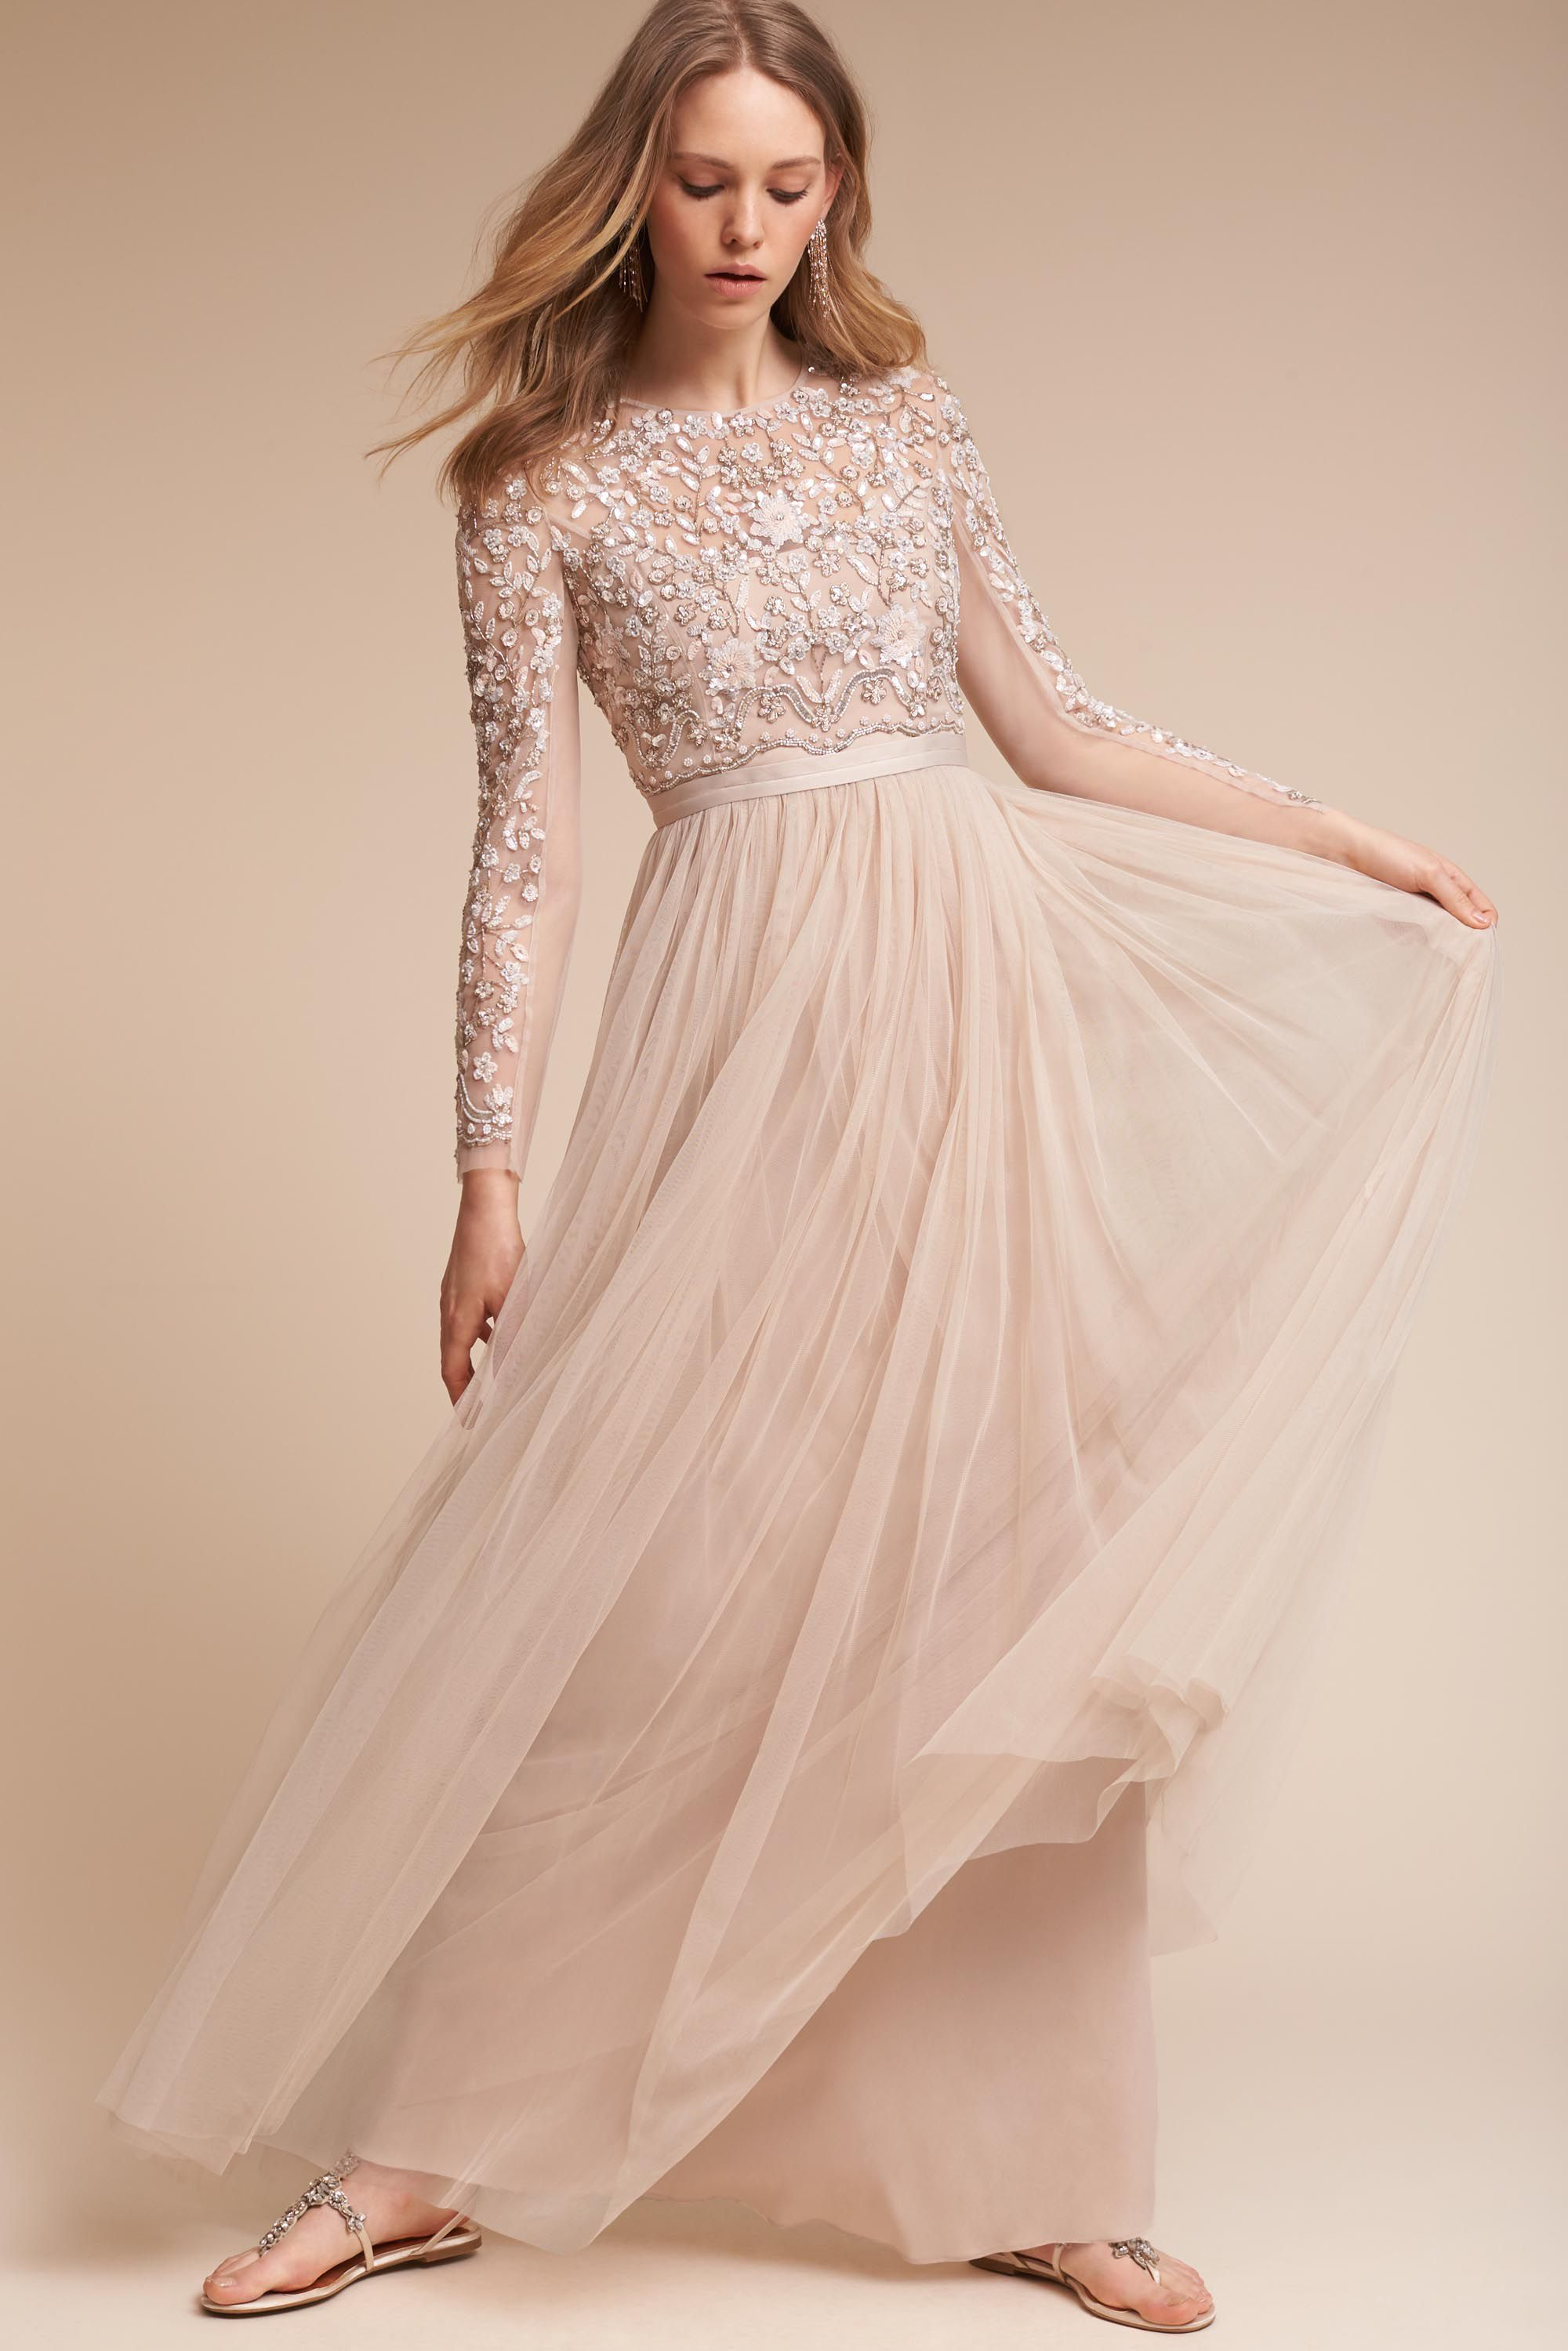 36 Beach Wedding Dresses That Will Make You Fall In Love All Over ...